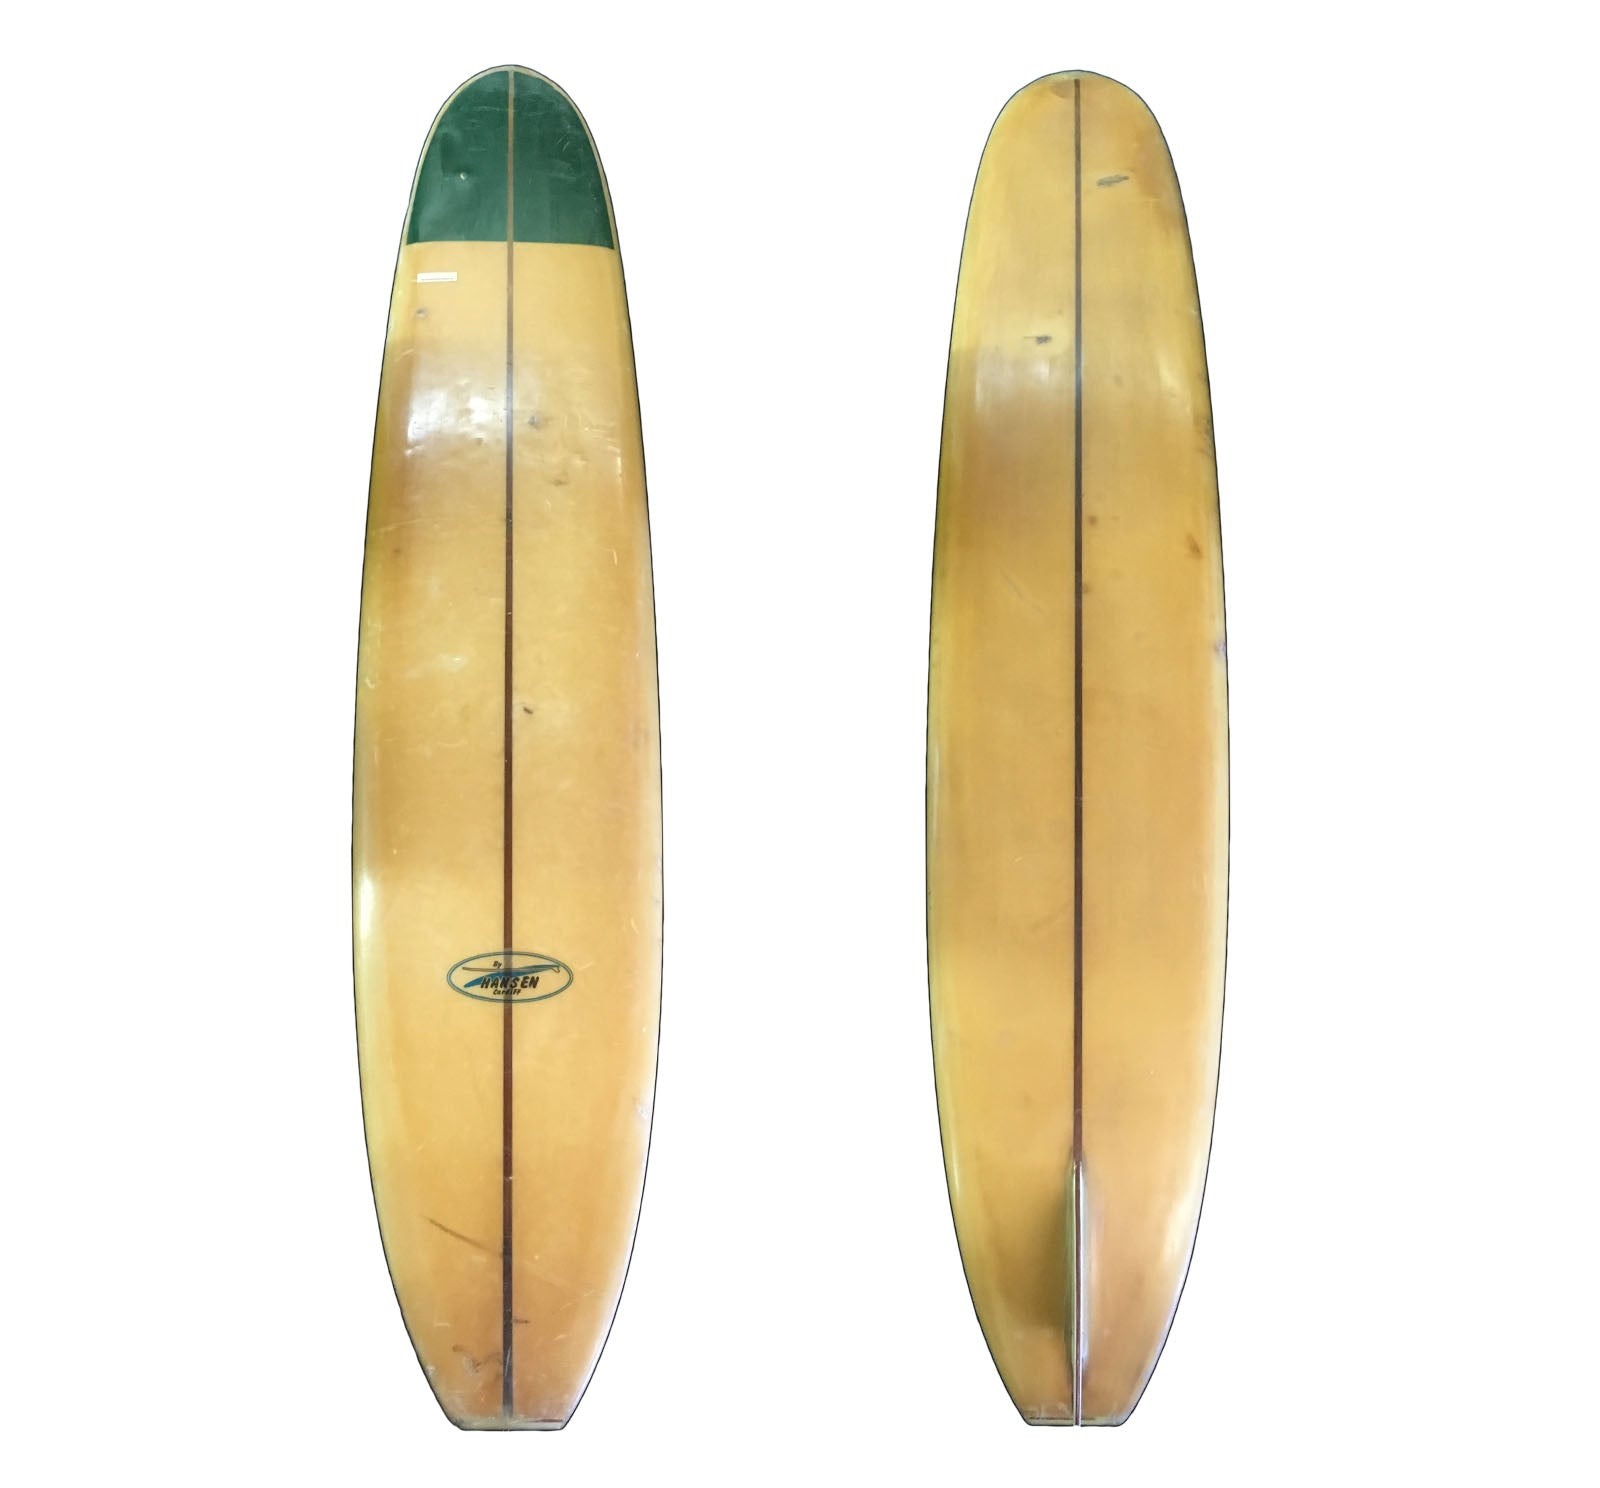 Hansen 9'10 Collector Surfboard